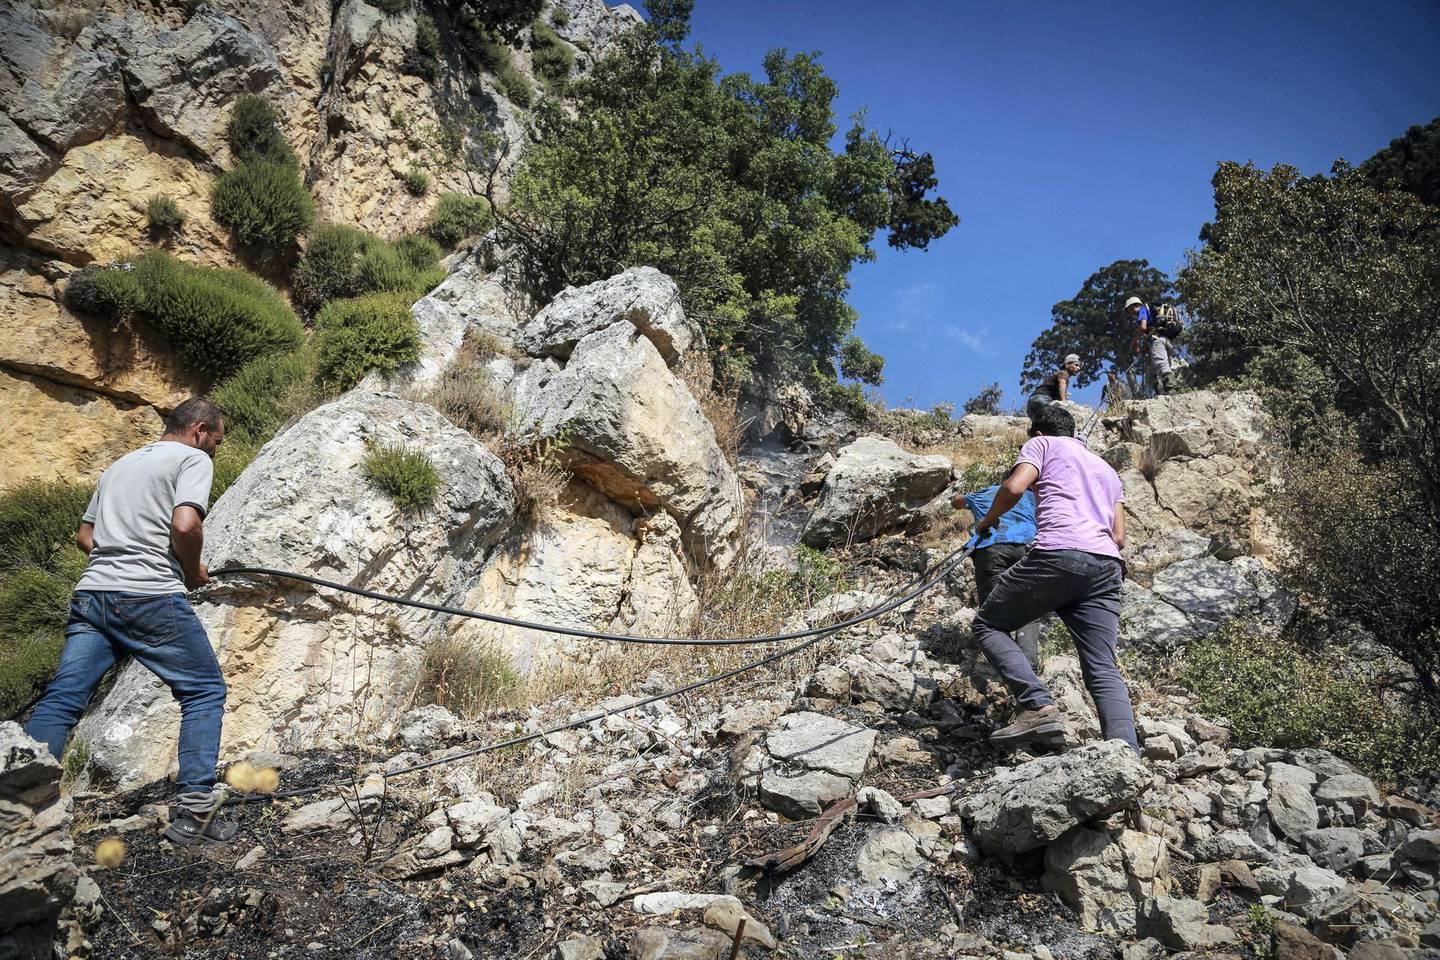 Volunteers climb to the site of a forest fire in  Jird Harar, in Lebanon's Akkar region on Aug. 30, 2020